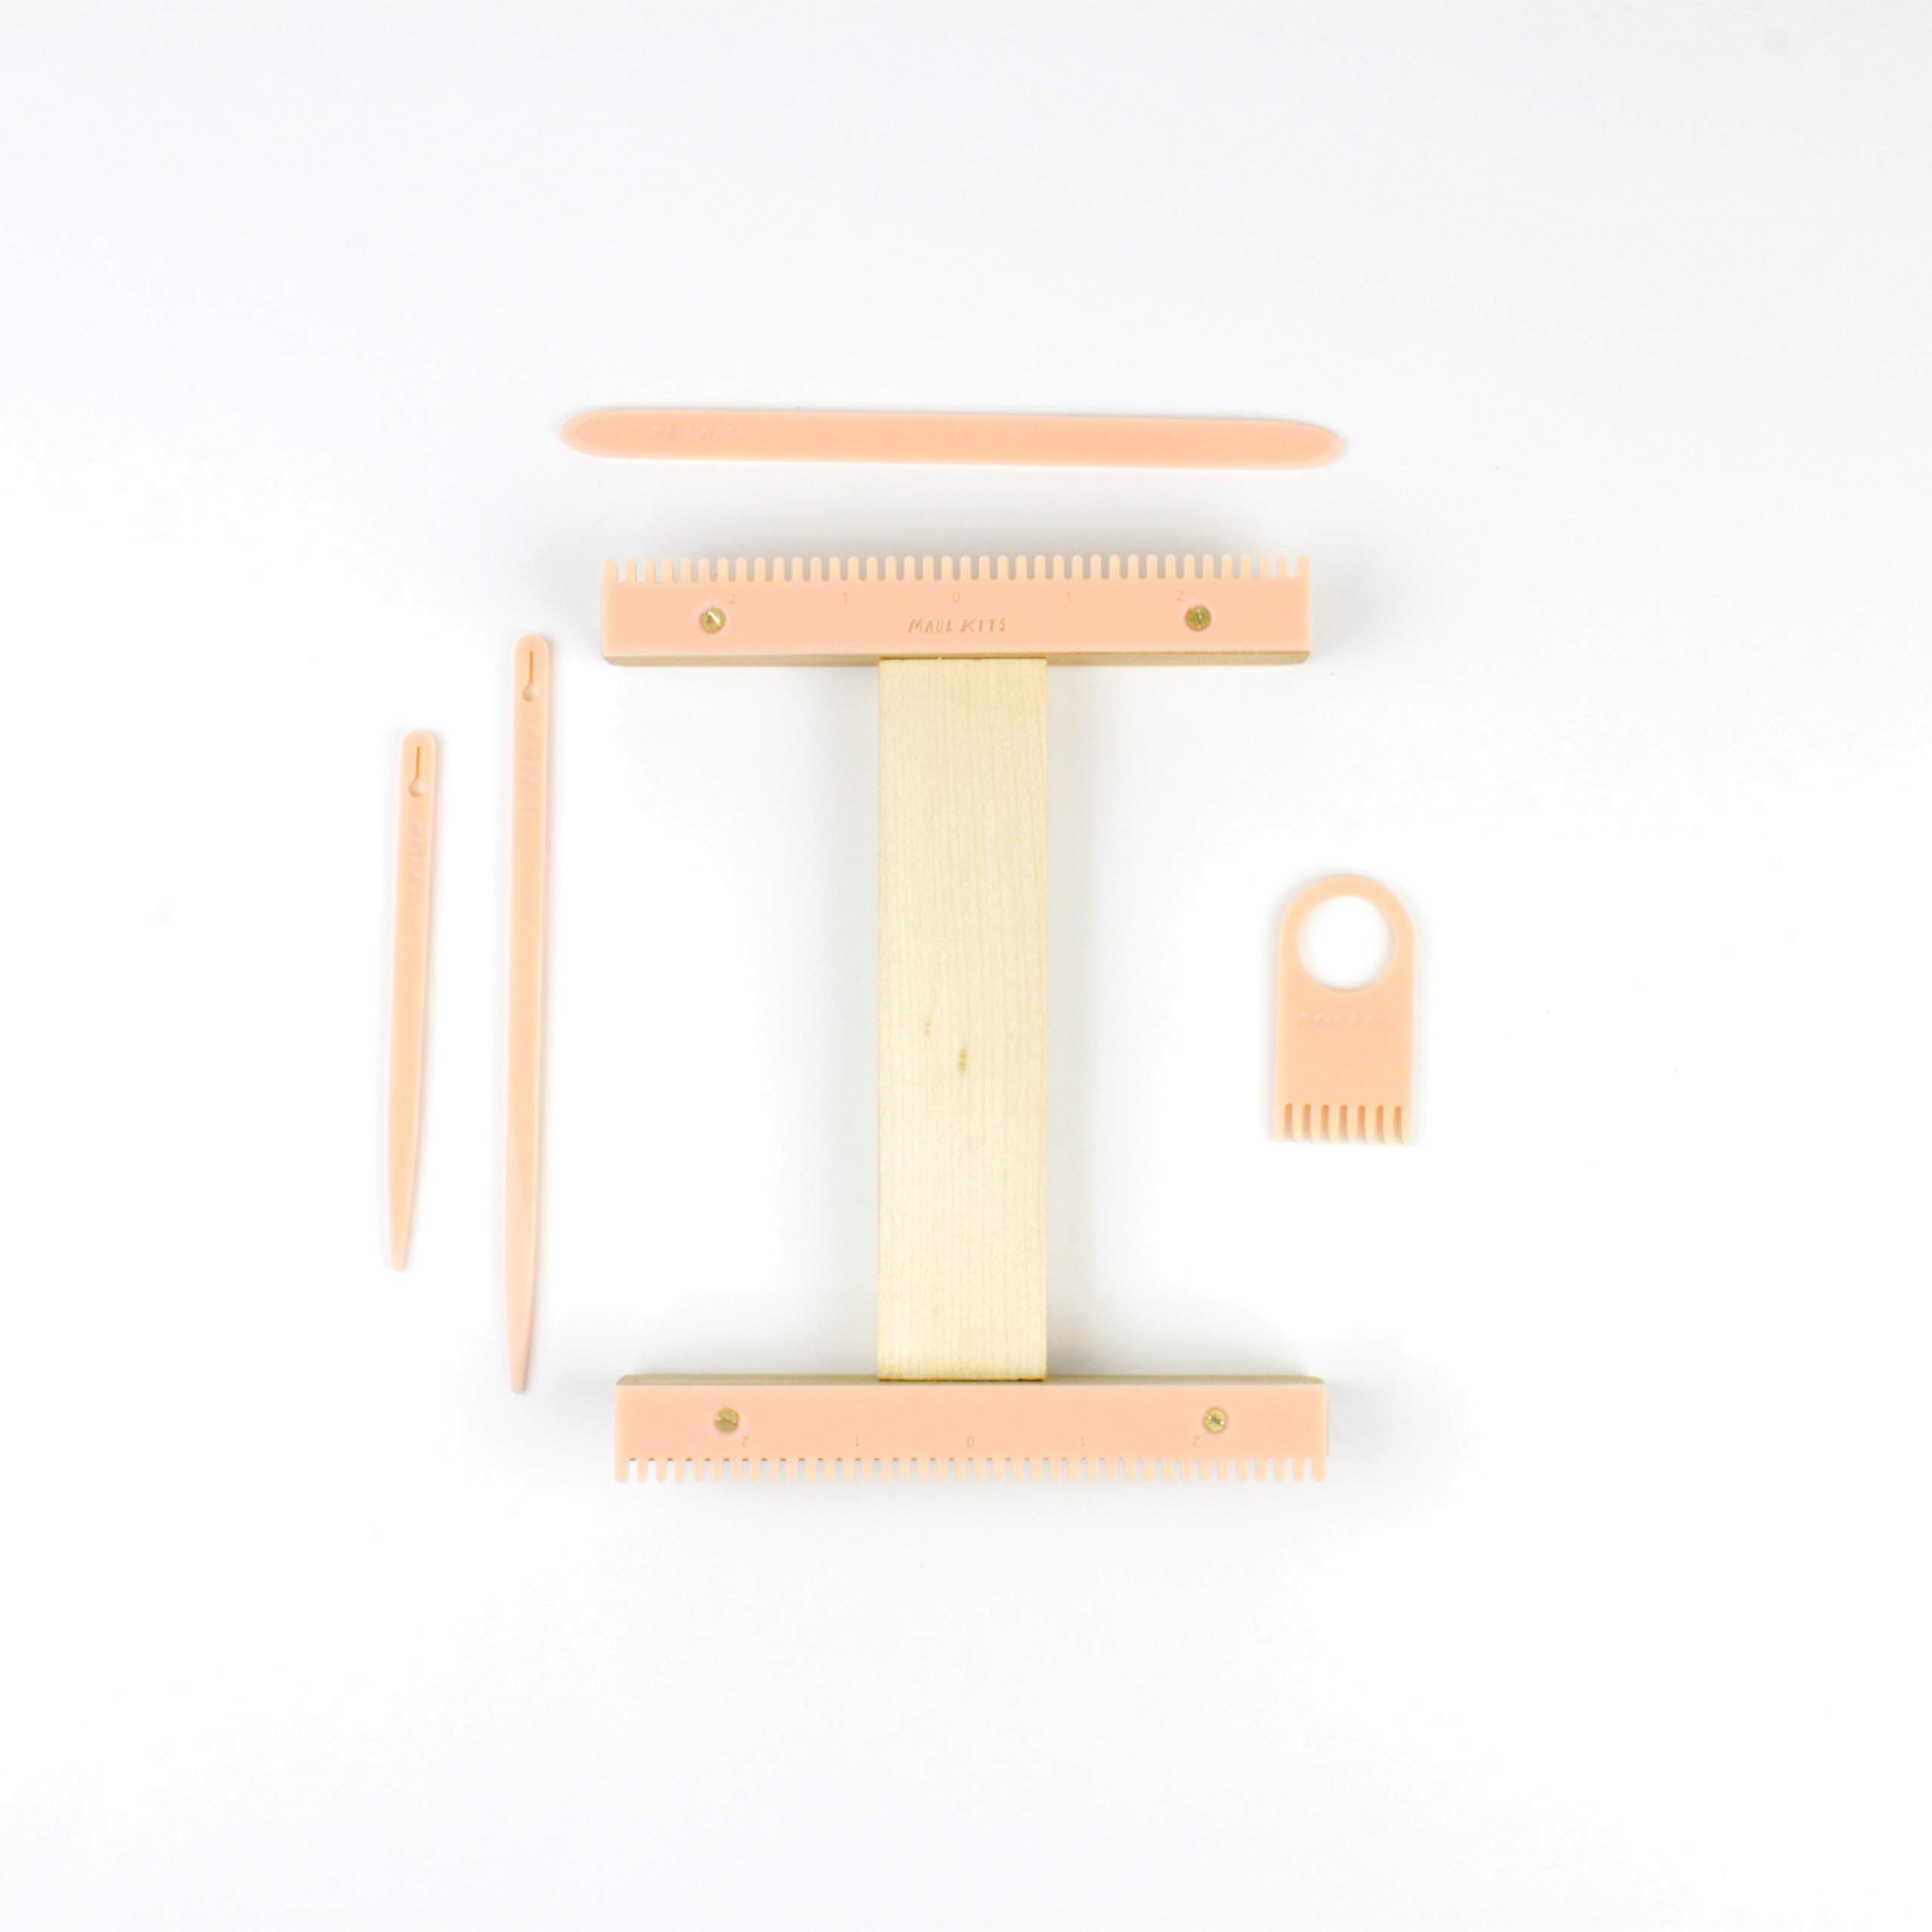 Weaving Loom Kit by One-OneThousand. I Loom Kit, Weaving Loom, Weaving Supplies, Learn to Weave, Peachy Pink